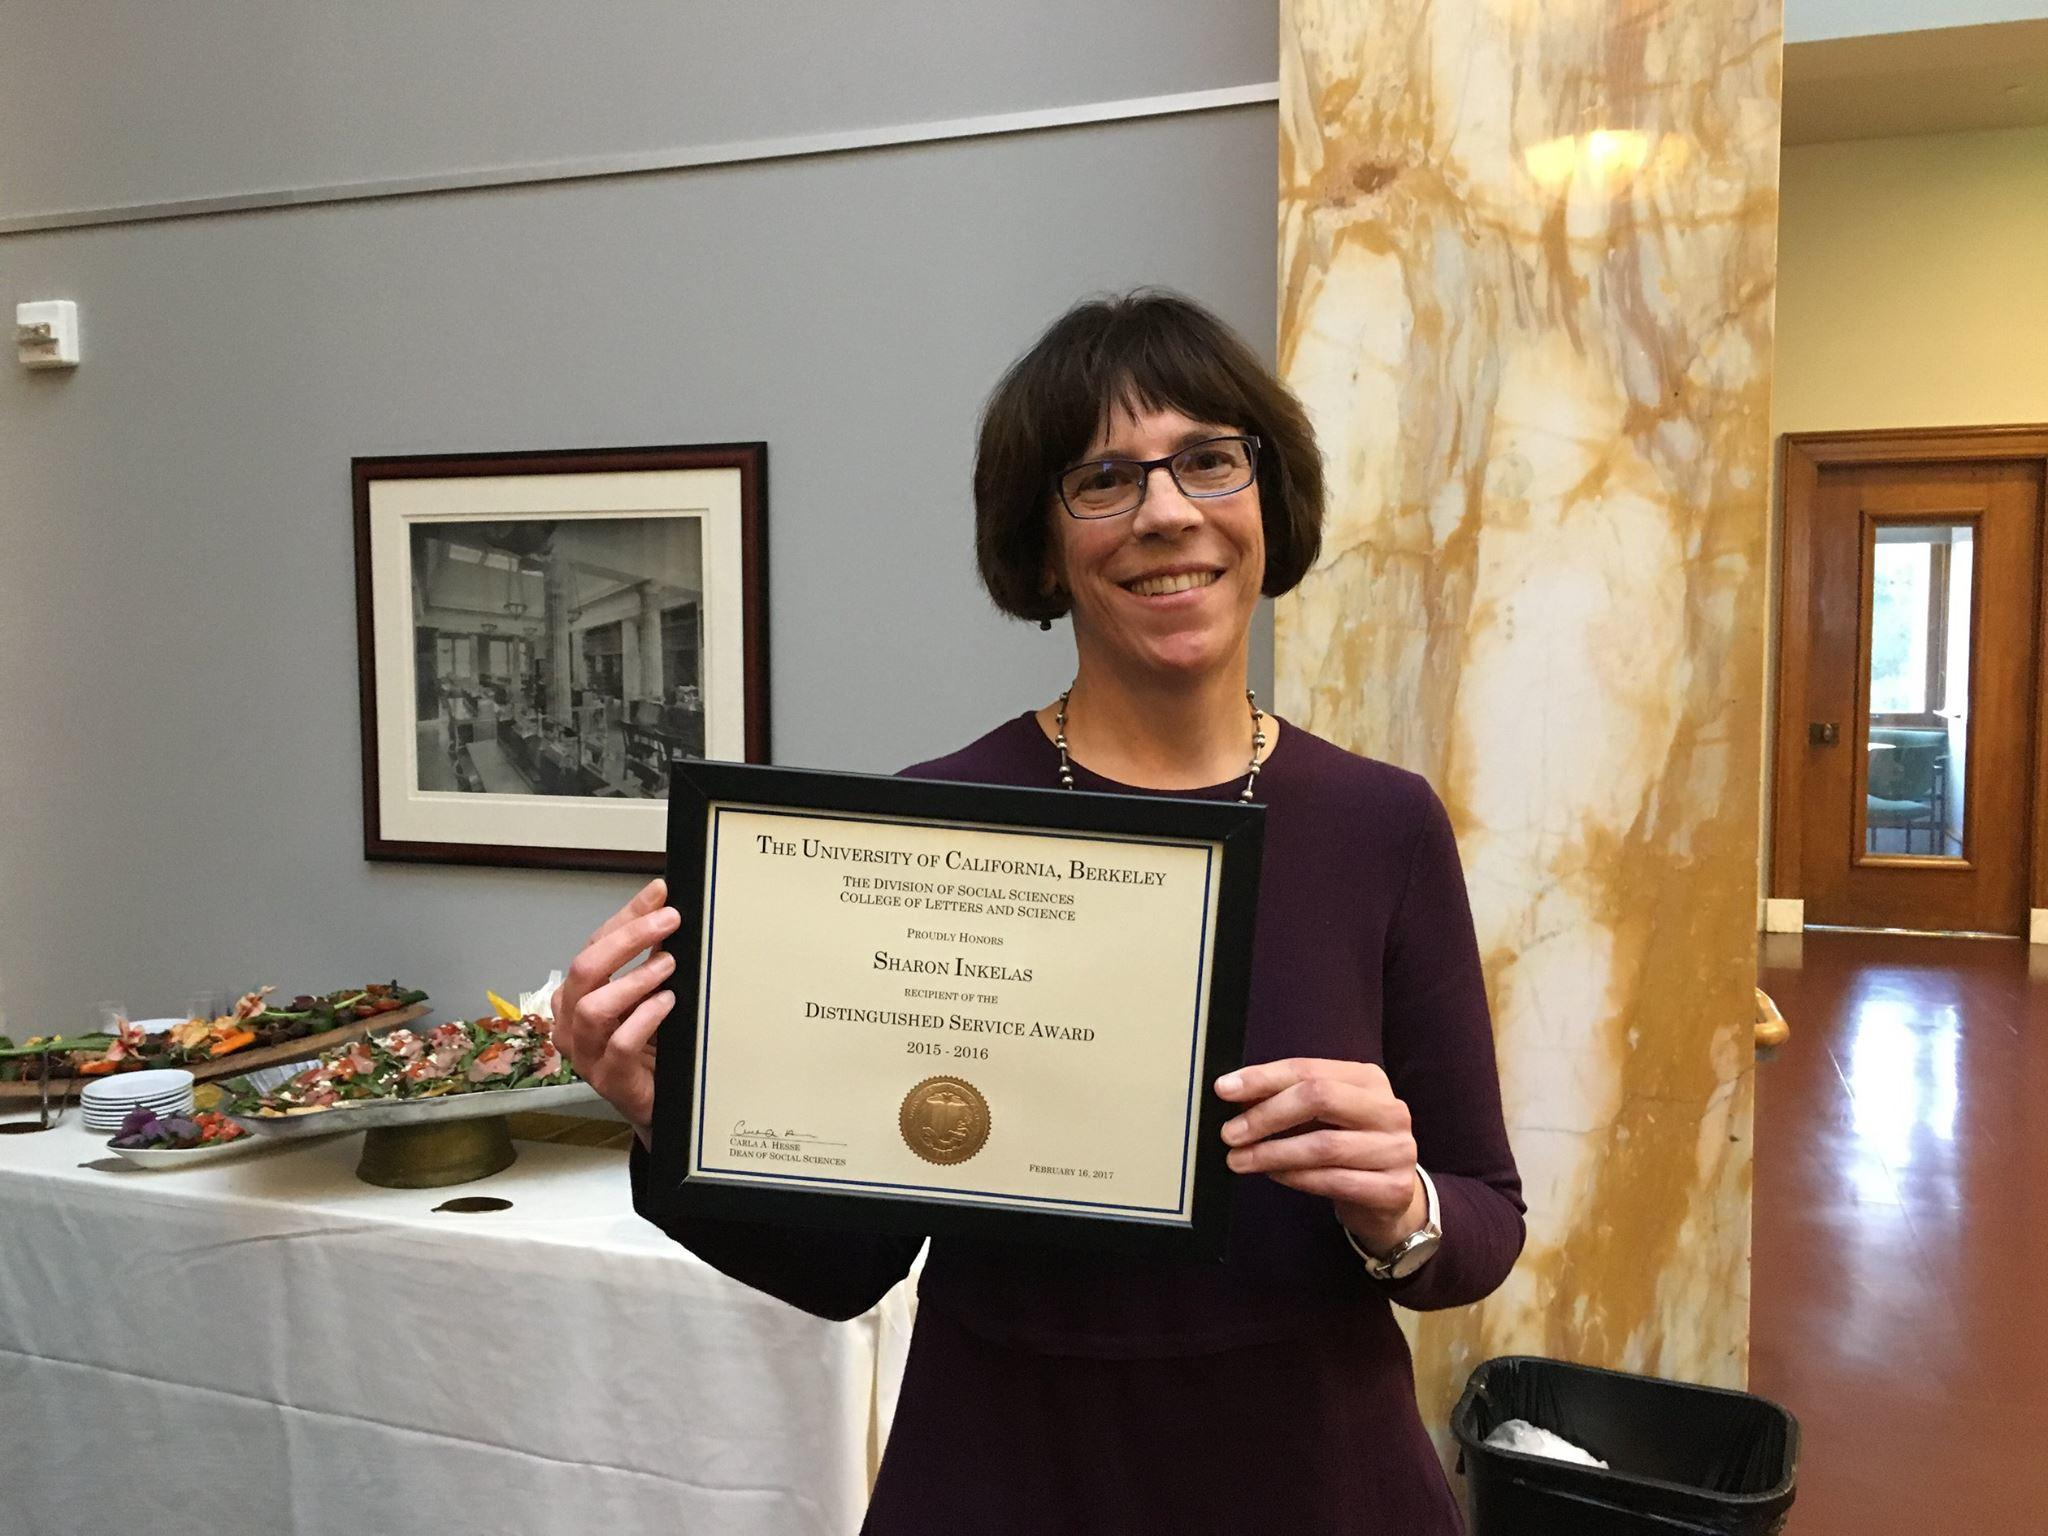 Sharon Inkelas, Social Sciences Distinguished Service Award